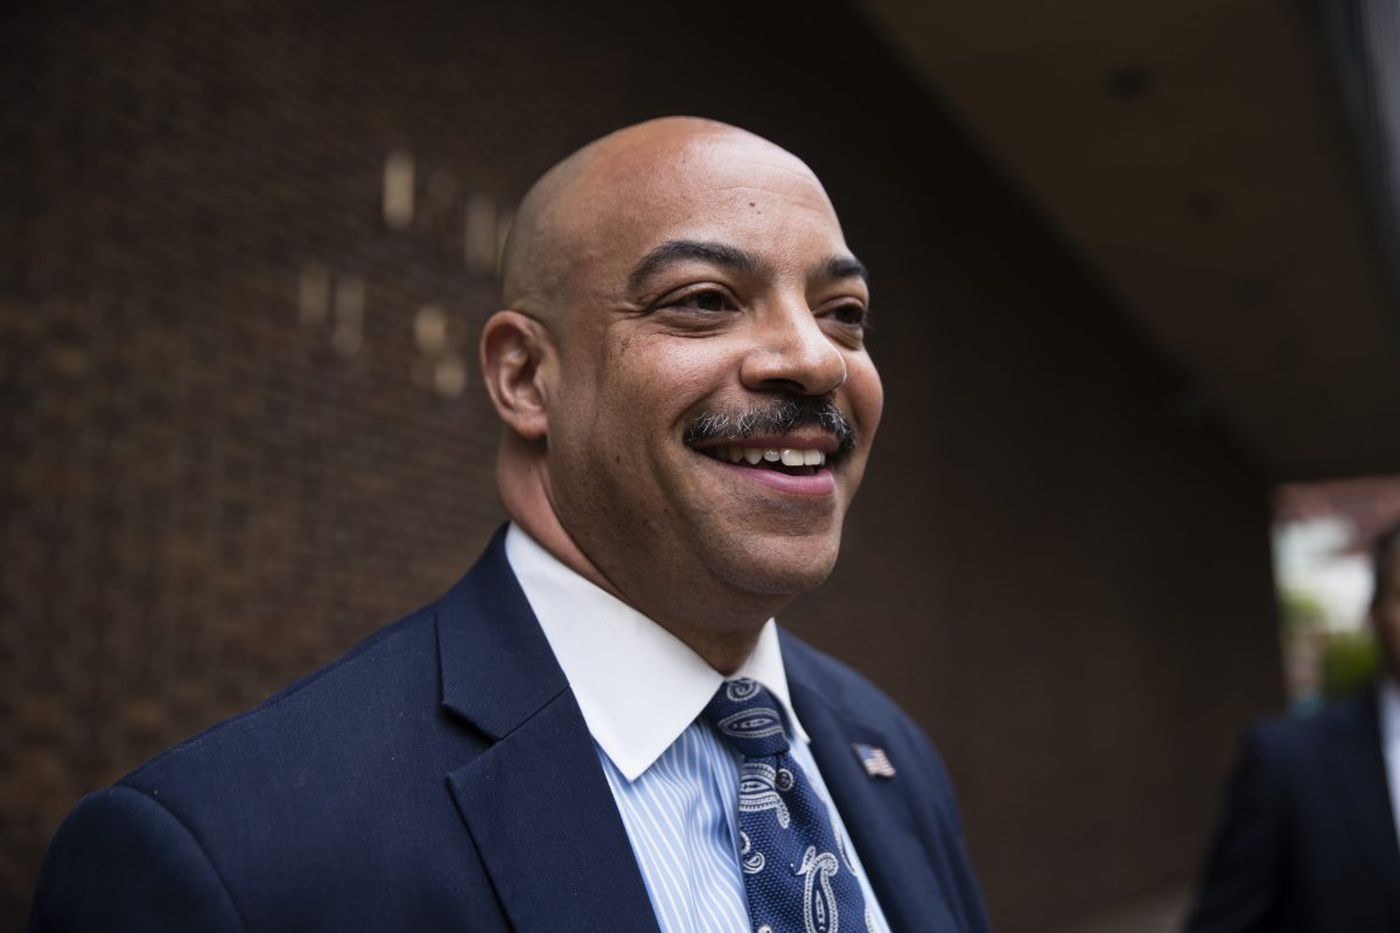 Philly DA Seth Williams' trial: Day-by-day updates